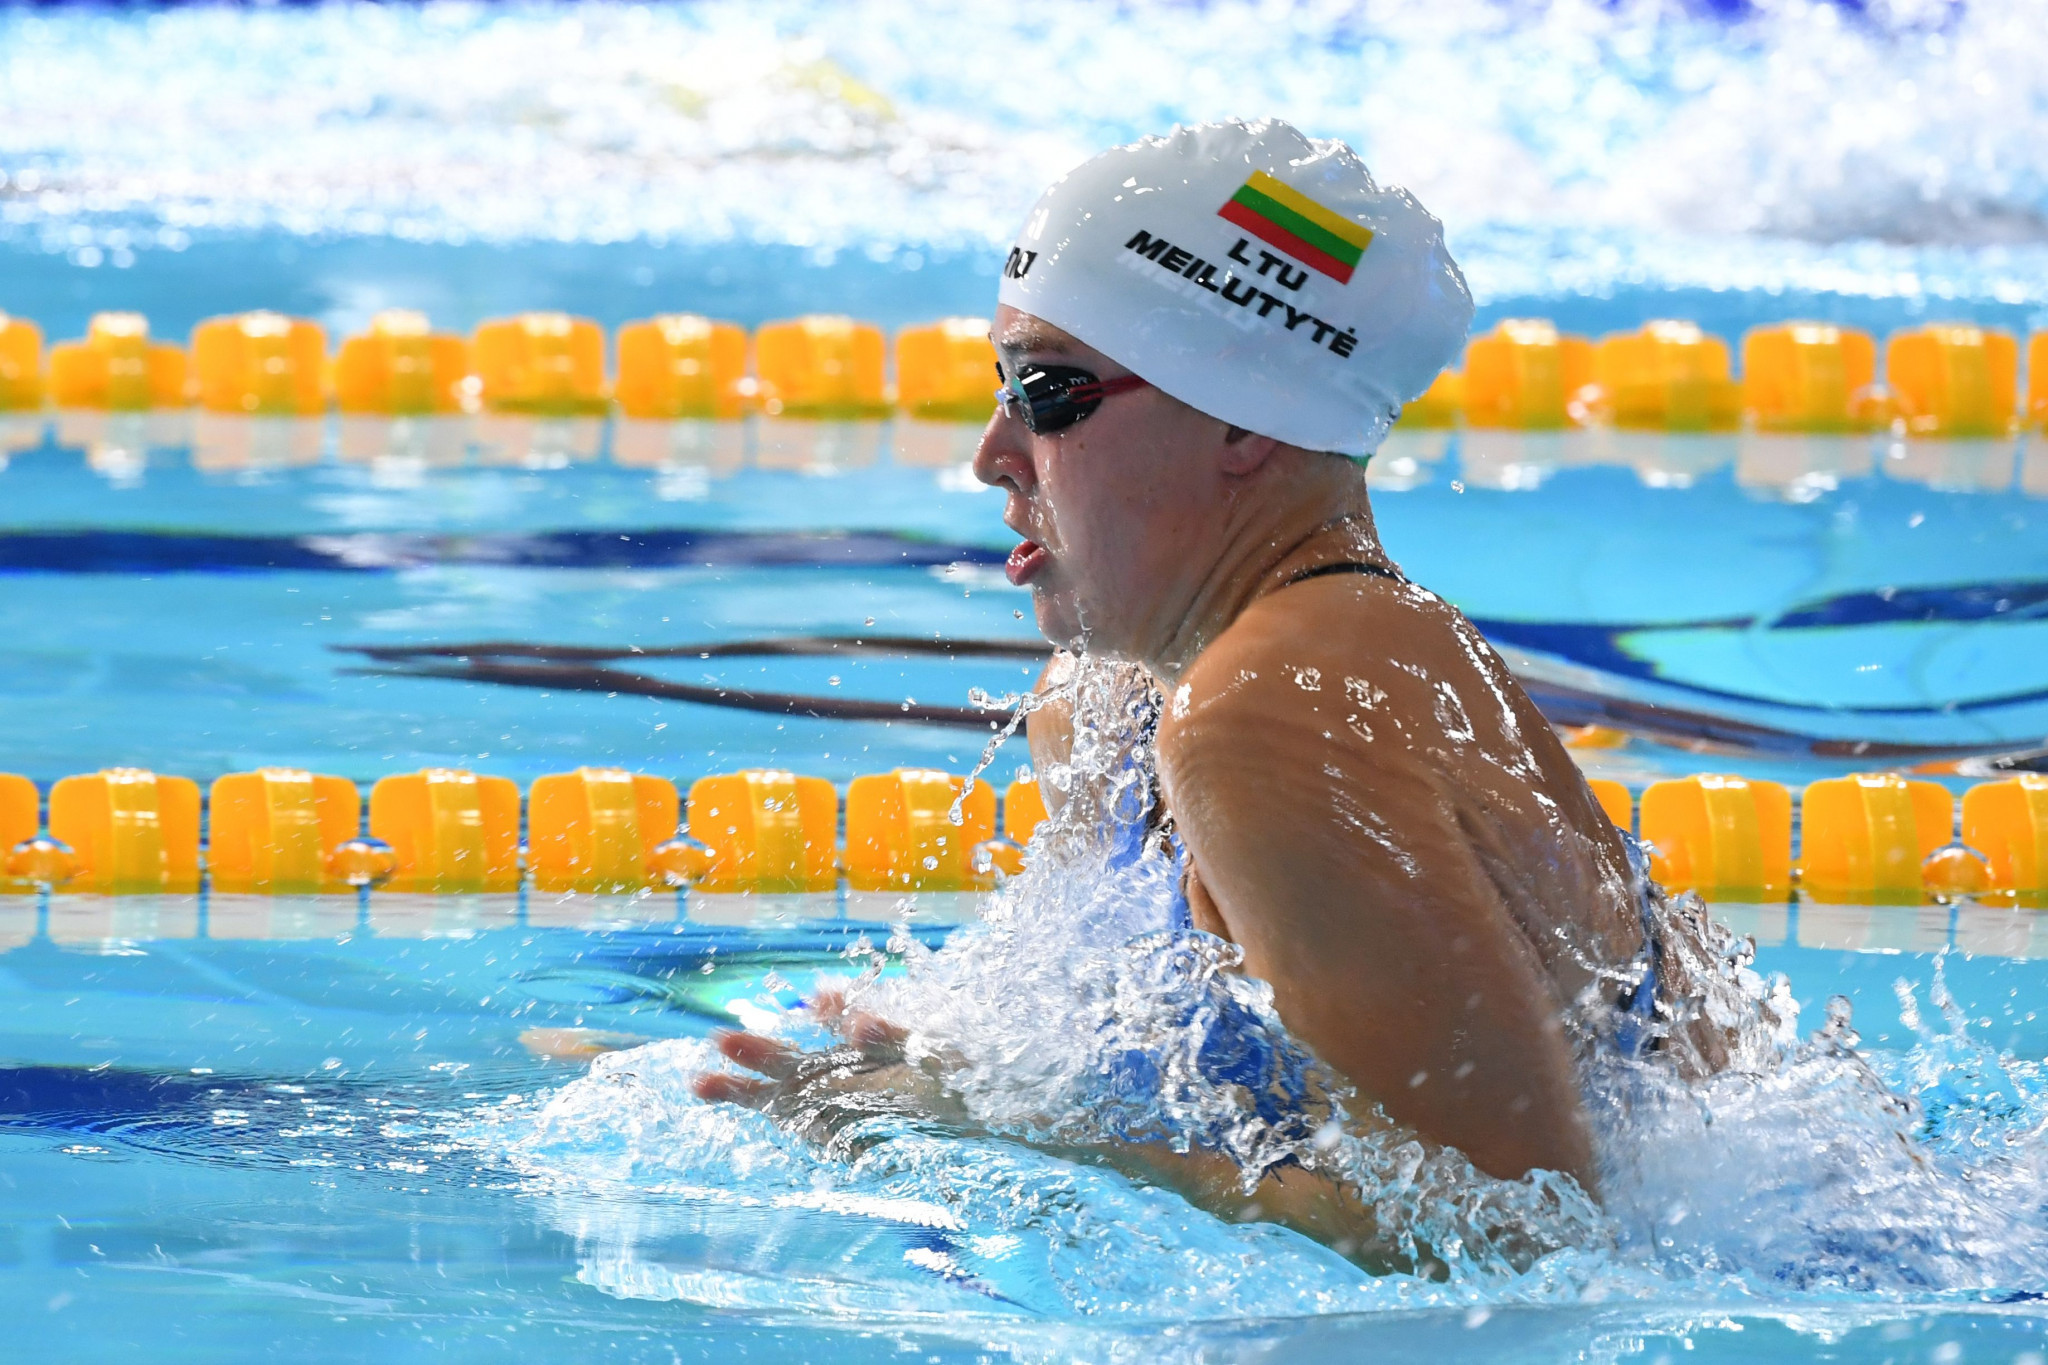 Lithuania's Olympic 100 metres breaststroke gold medallist Rūta Meilutytė has announced her retirement from swimming at the age of 22 ©Getty Images